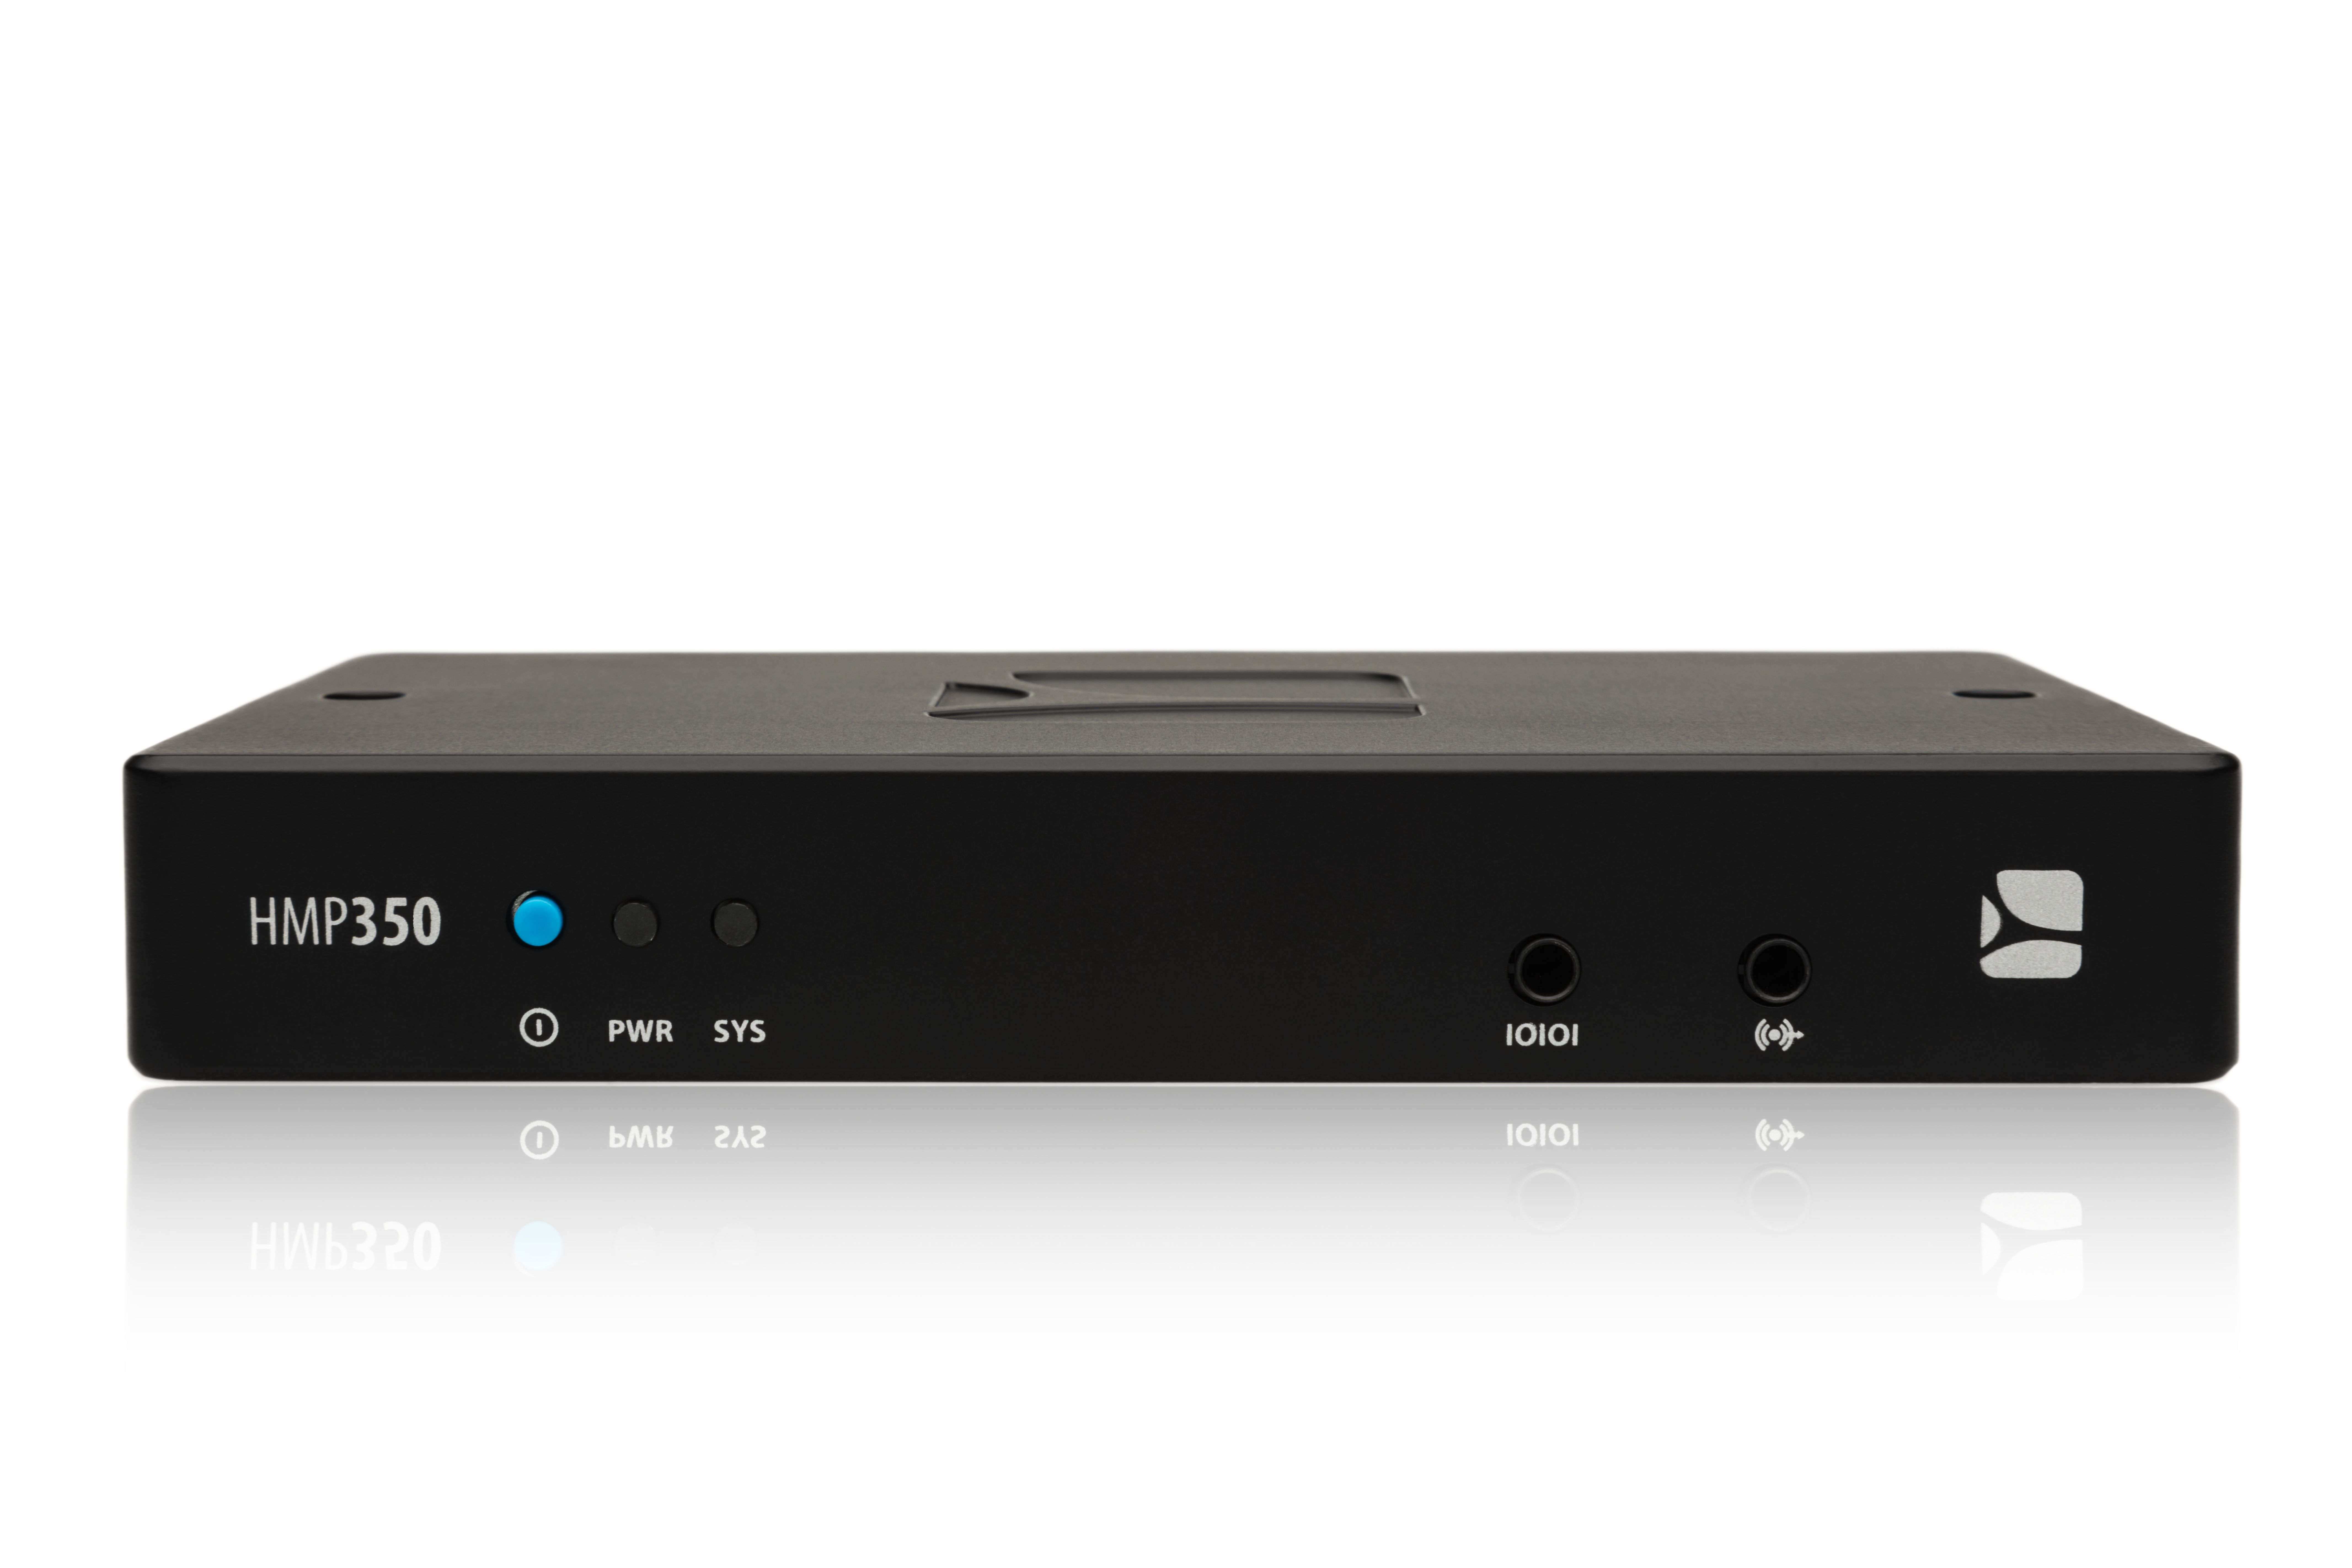 Spinetix HMP350 Hyper Media Player - 1080p with Advanced Features